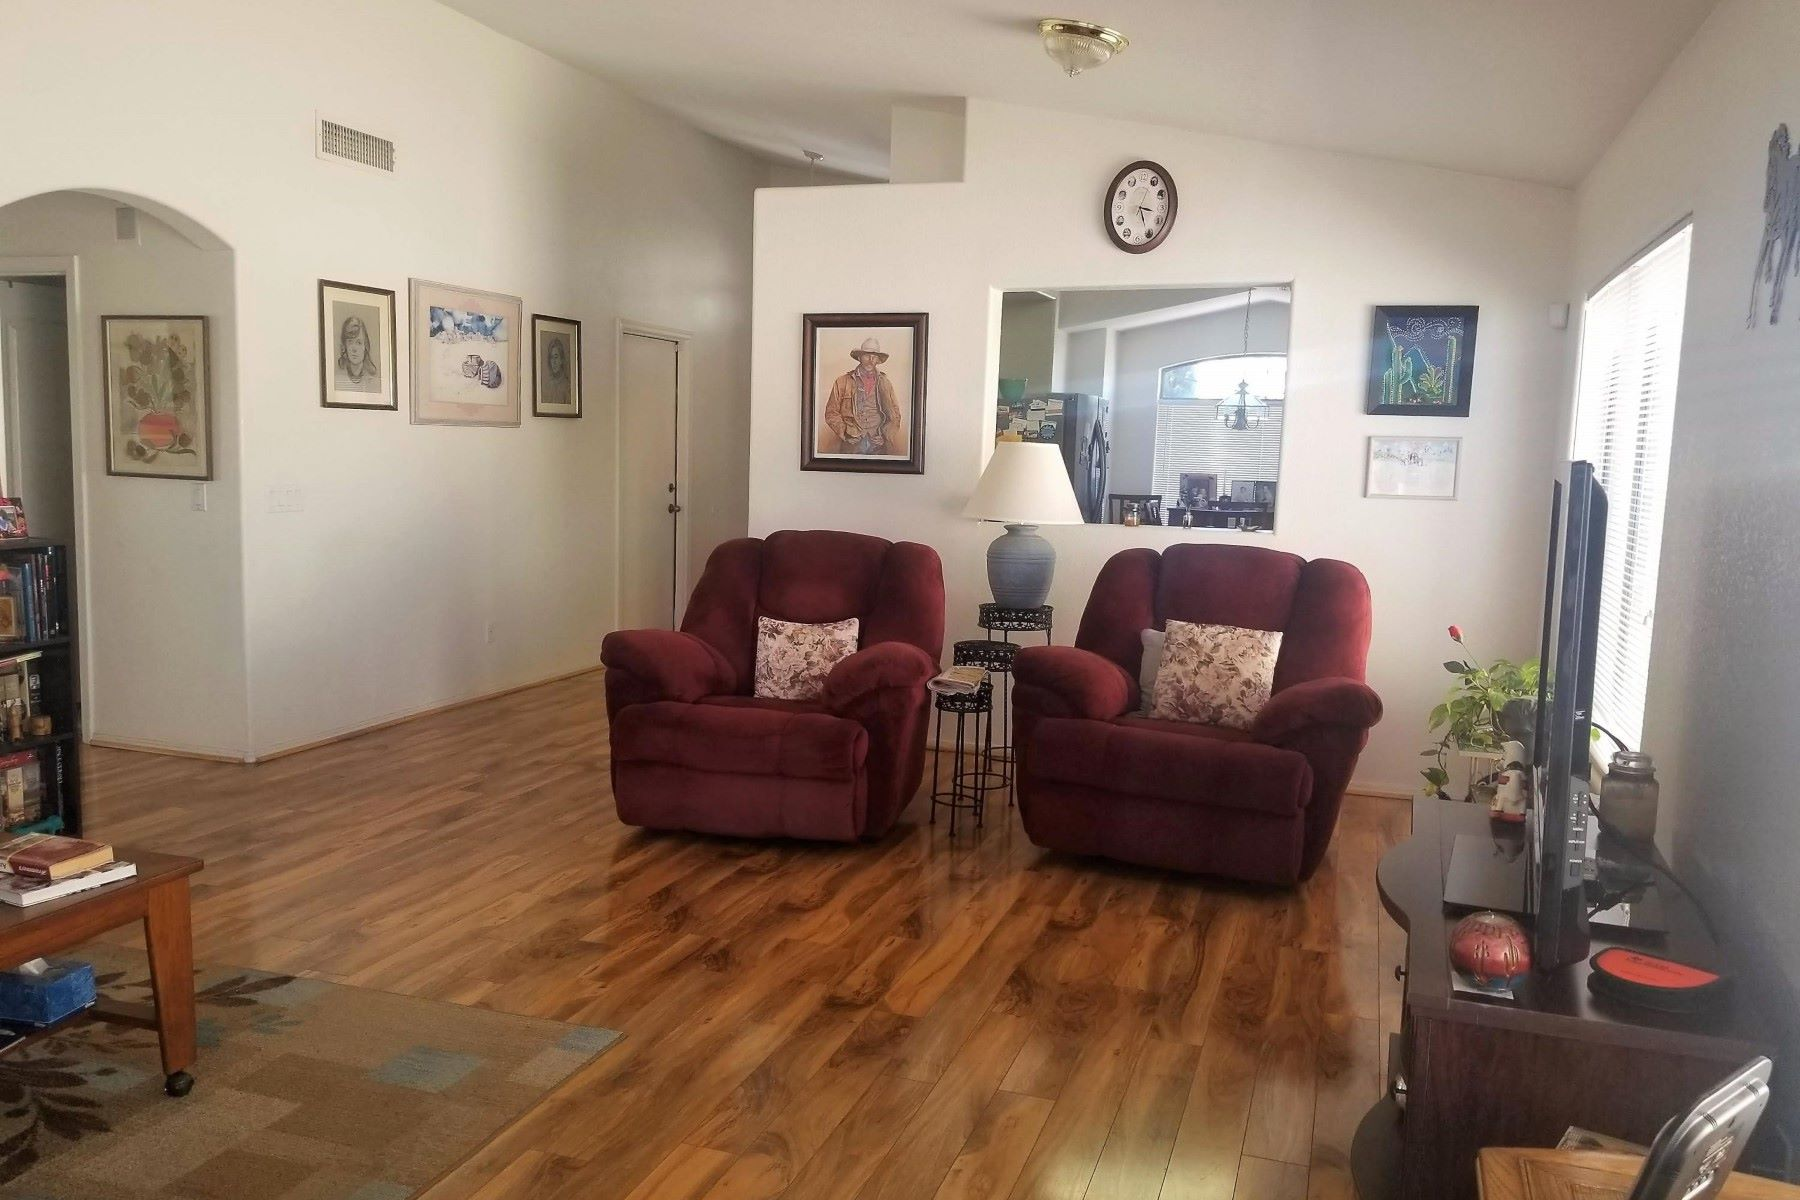 single family homes for Active at Charming Single Level Home 5751 W Freeway LN Glendale, Arizona 85302 United States